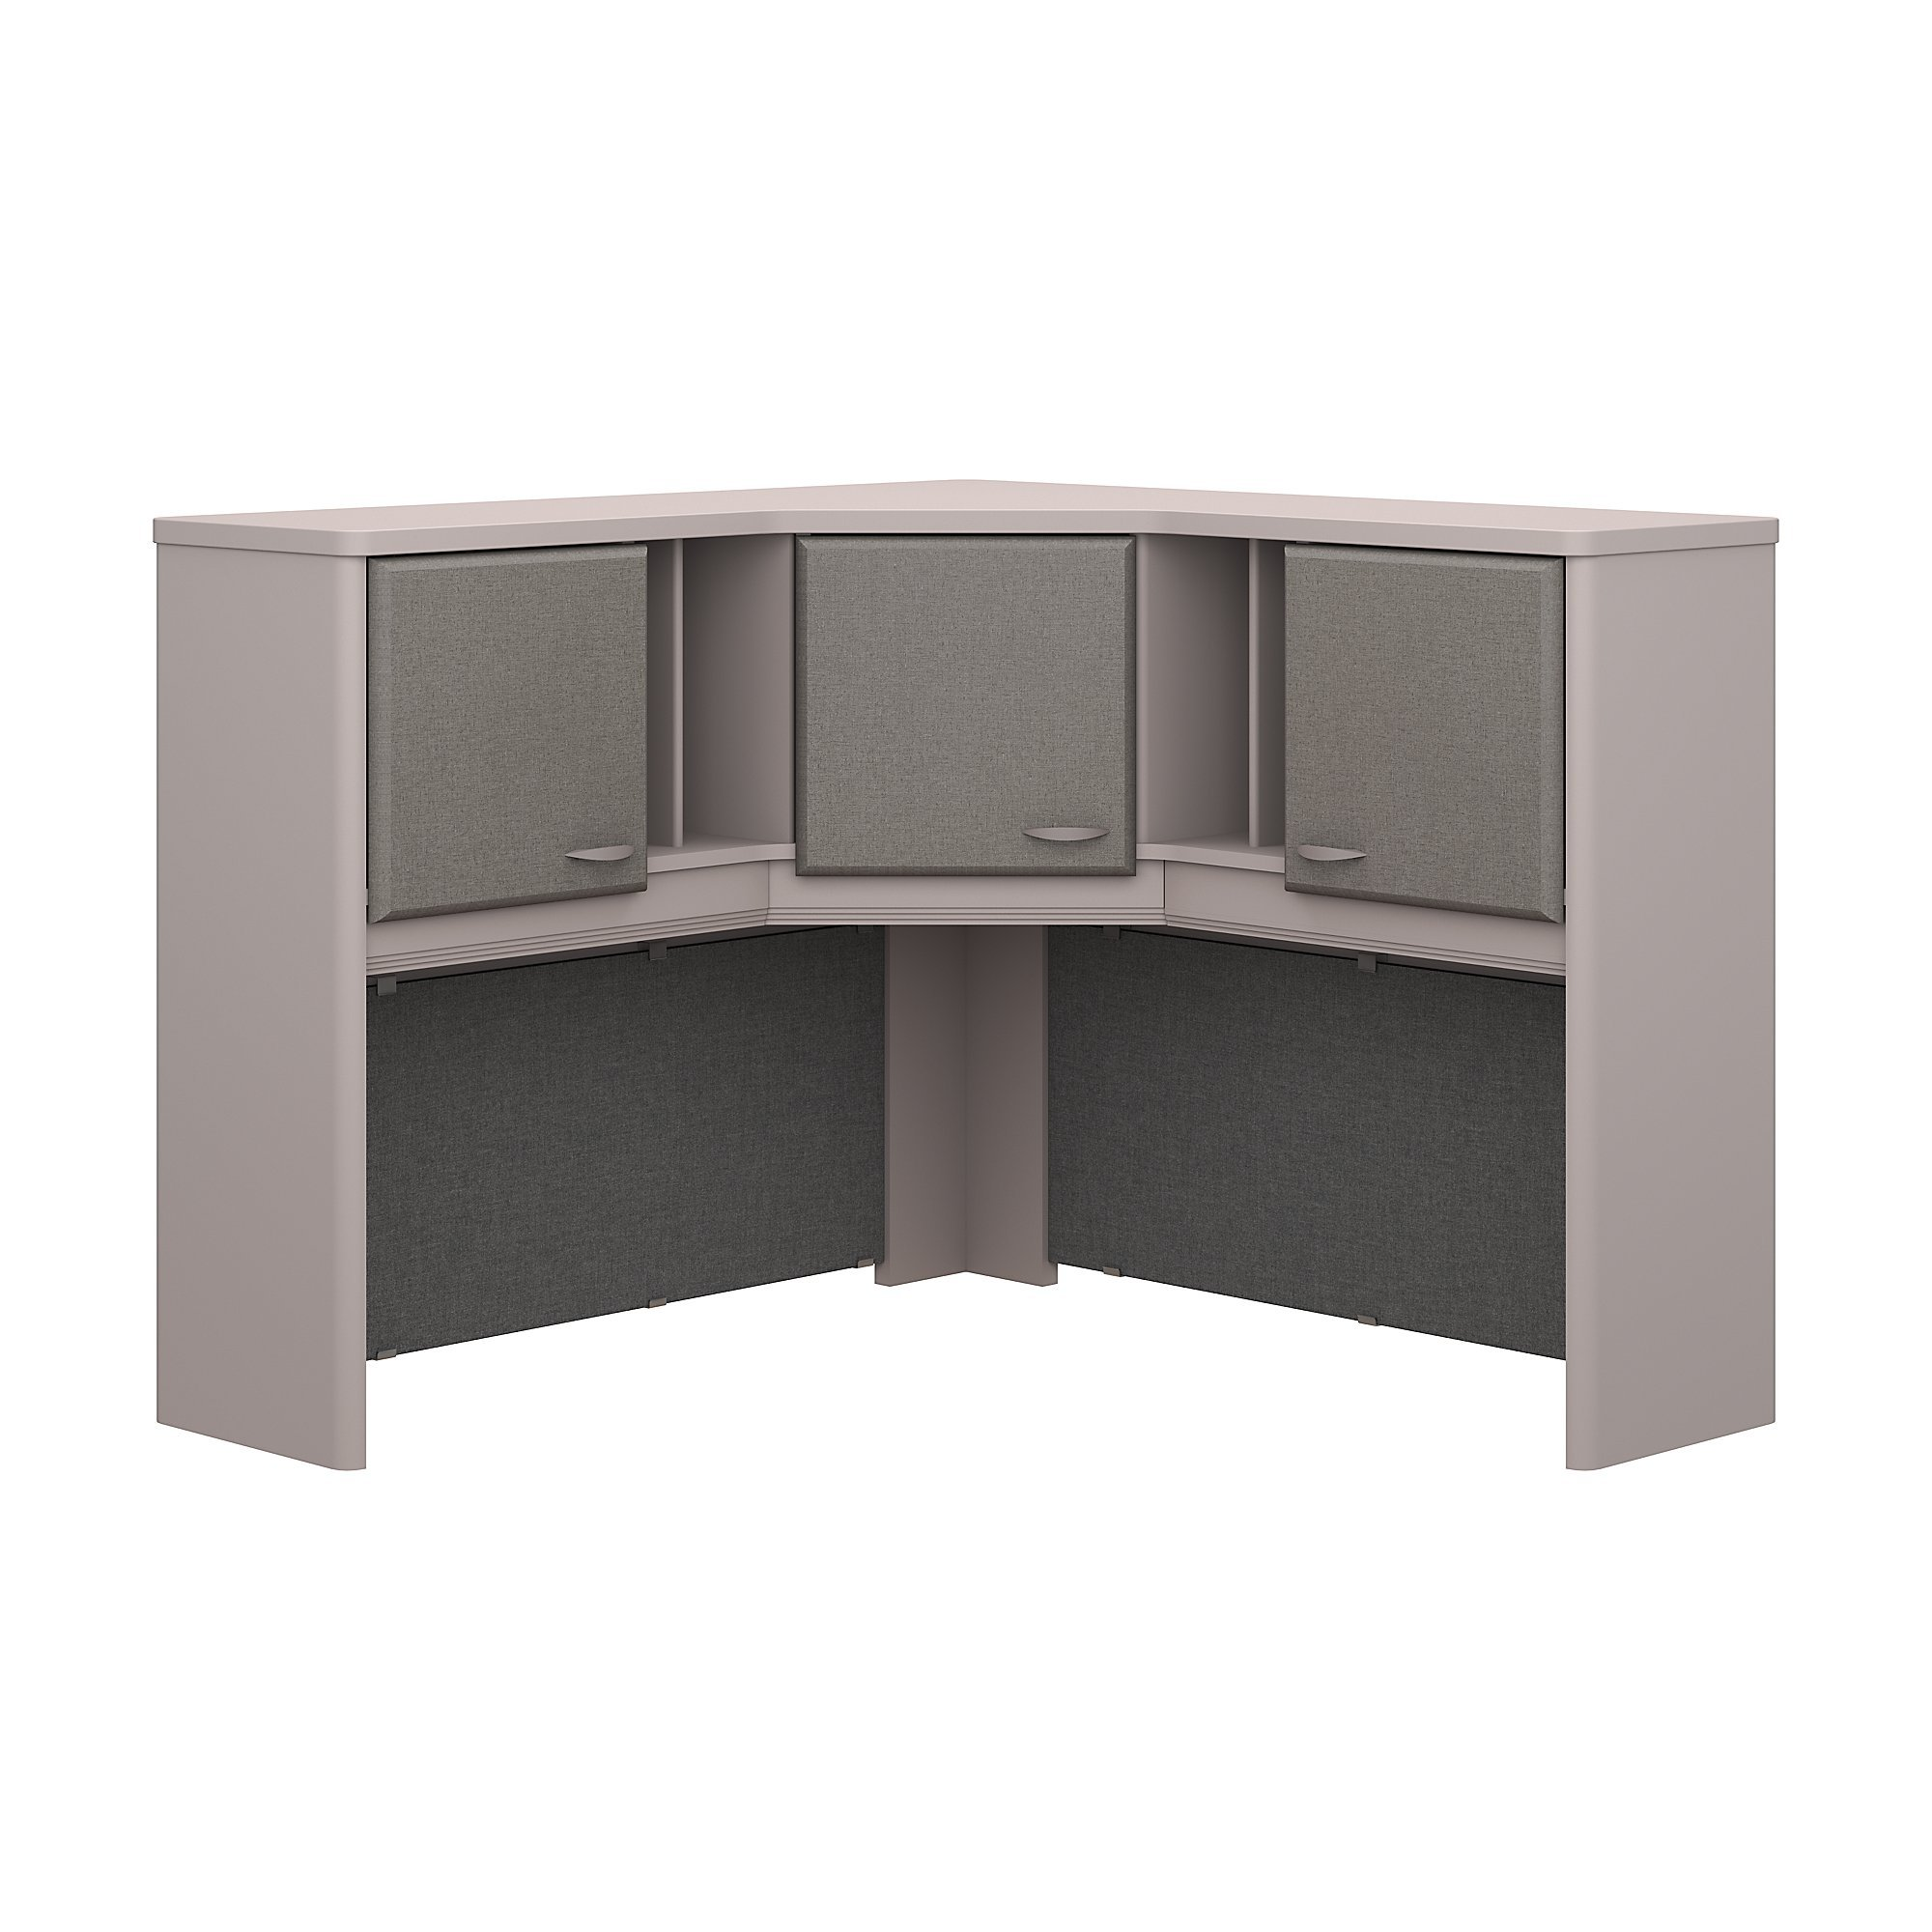 Bush Business Furniture Series A 48W Corner Hutch - Pewter/Pewter 47W X 47D X 37H Ergonomichome American Made TAA Compliant